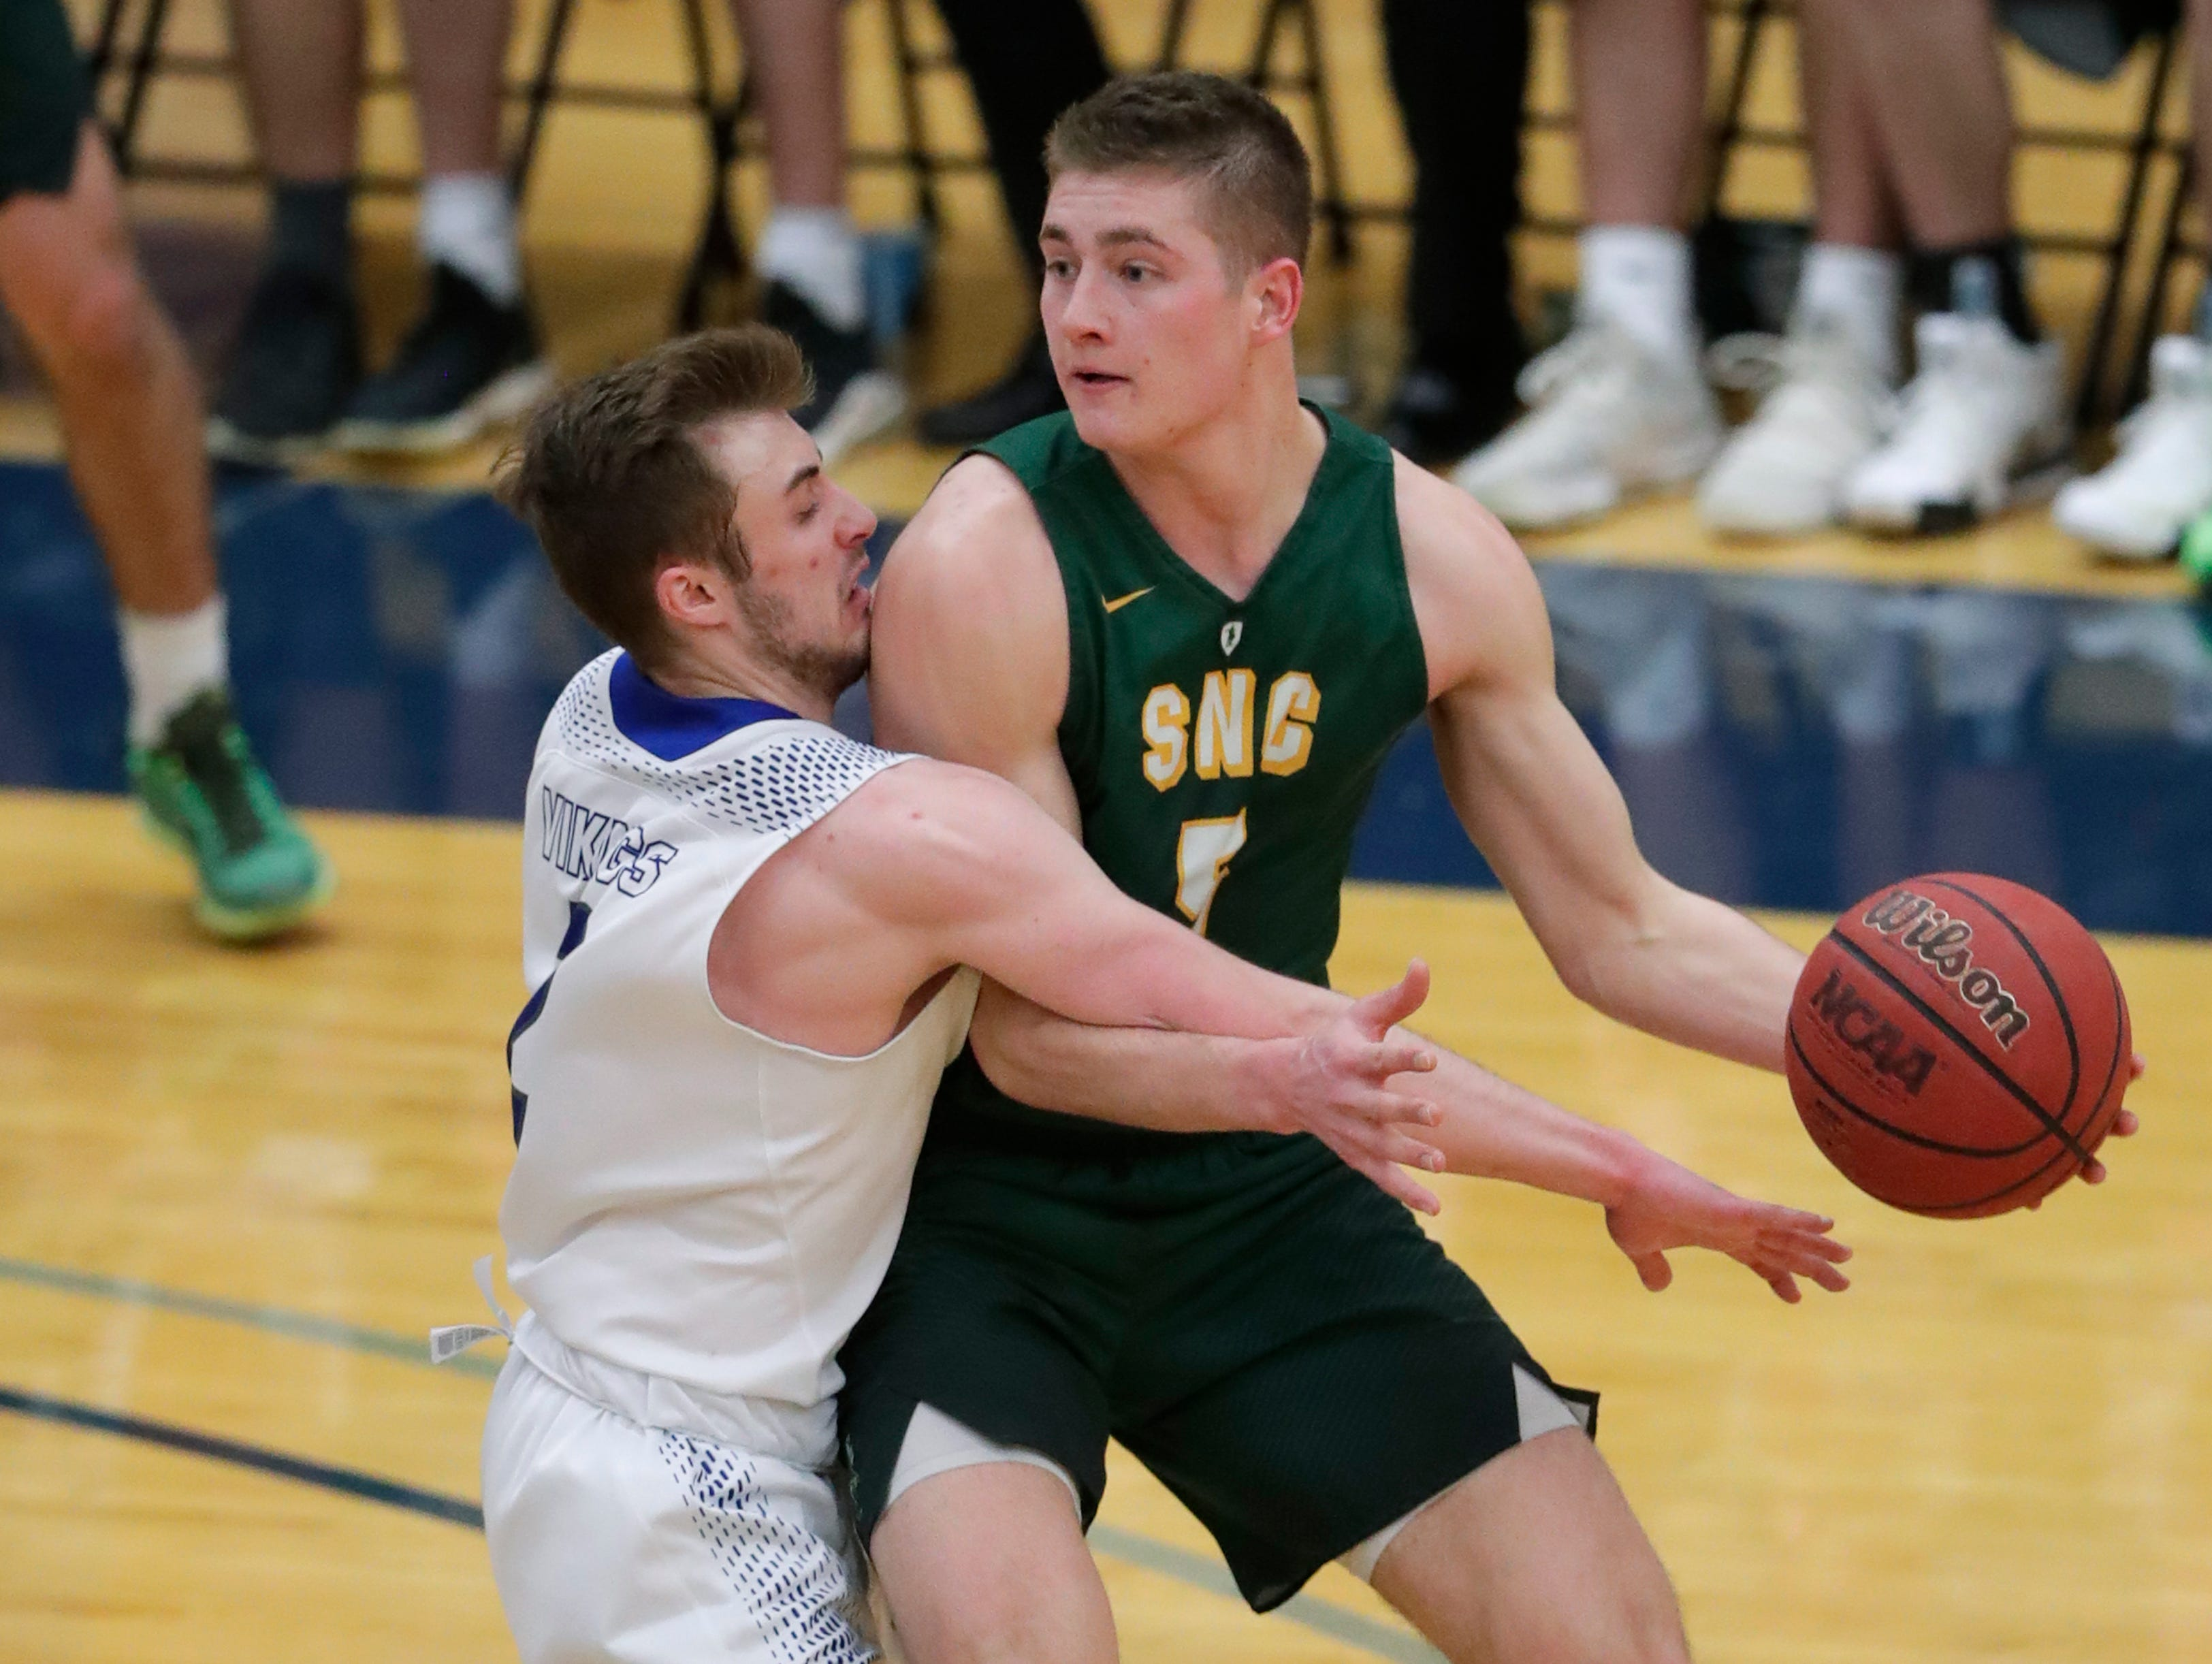 Lawrence University's Quinn Fisher (2) defends against St. Norbert College's Joe Ciriacks (5) during their men's basketball game Thursday, January 31, 2019, at Alexander Gymnasium in Appleton, Wis. 